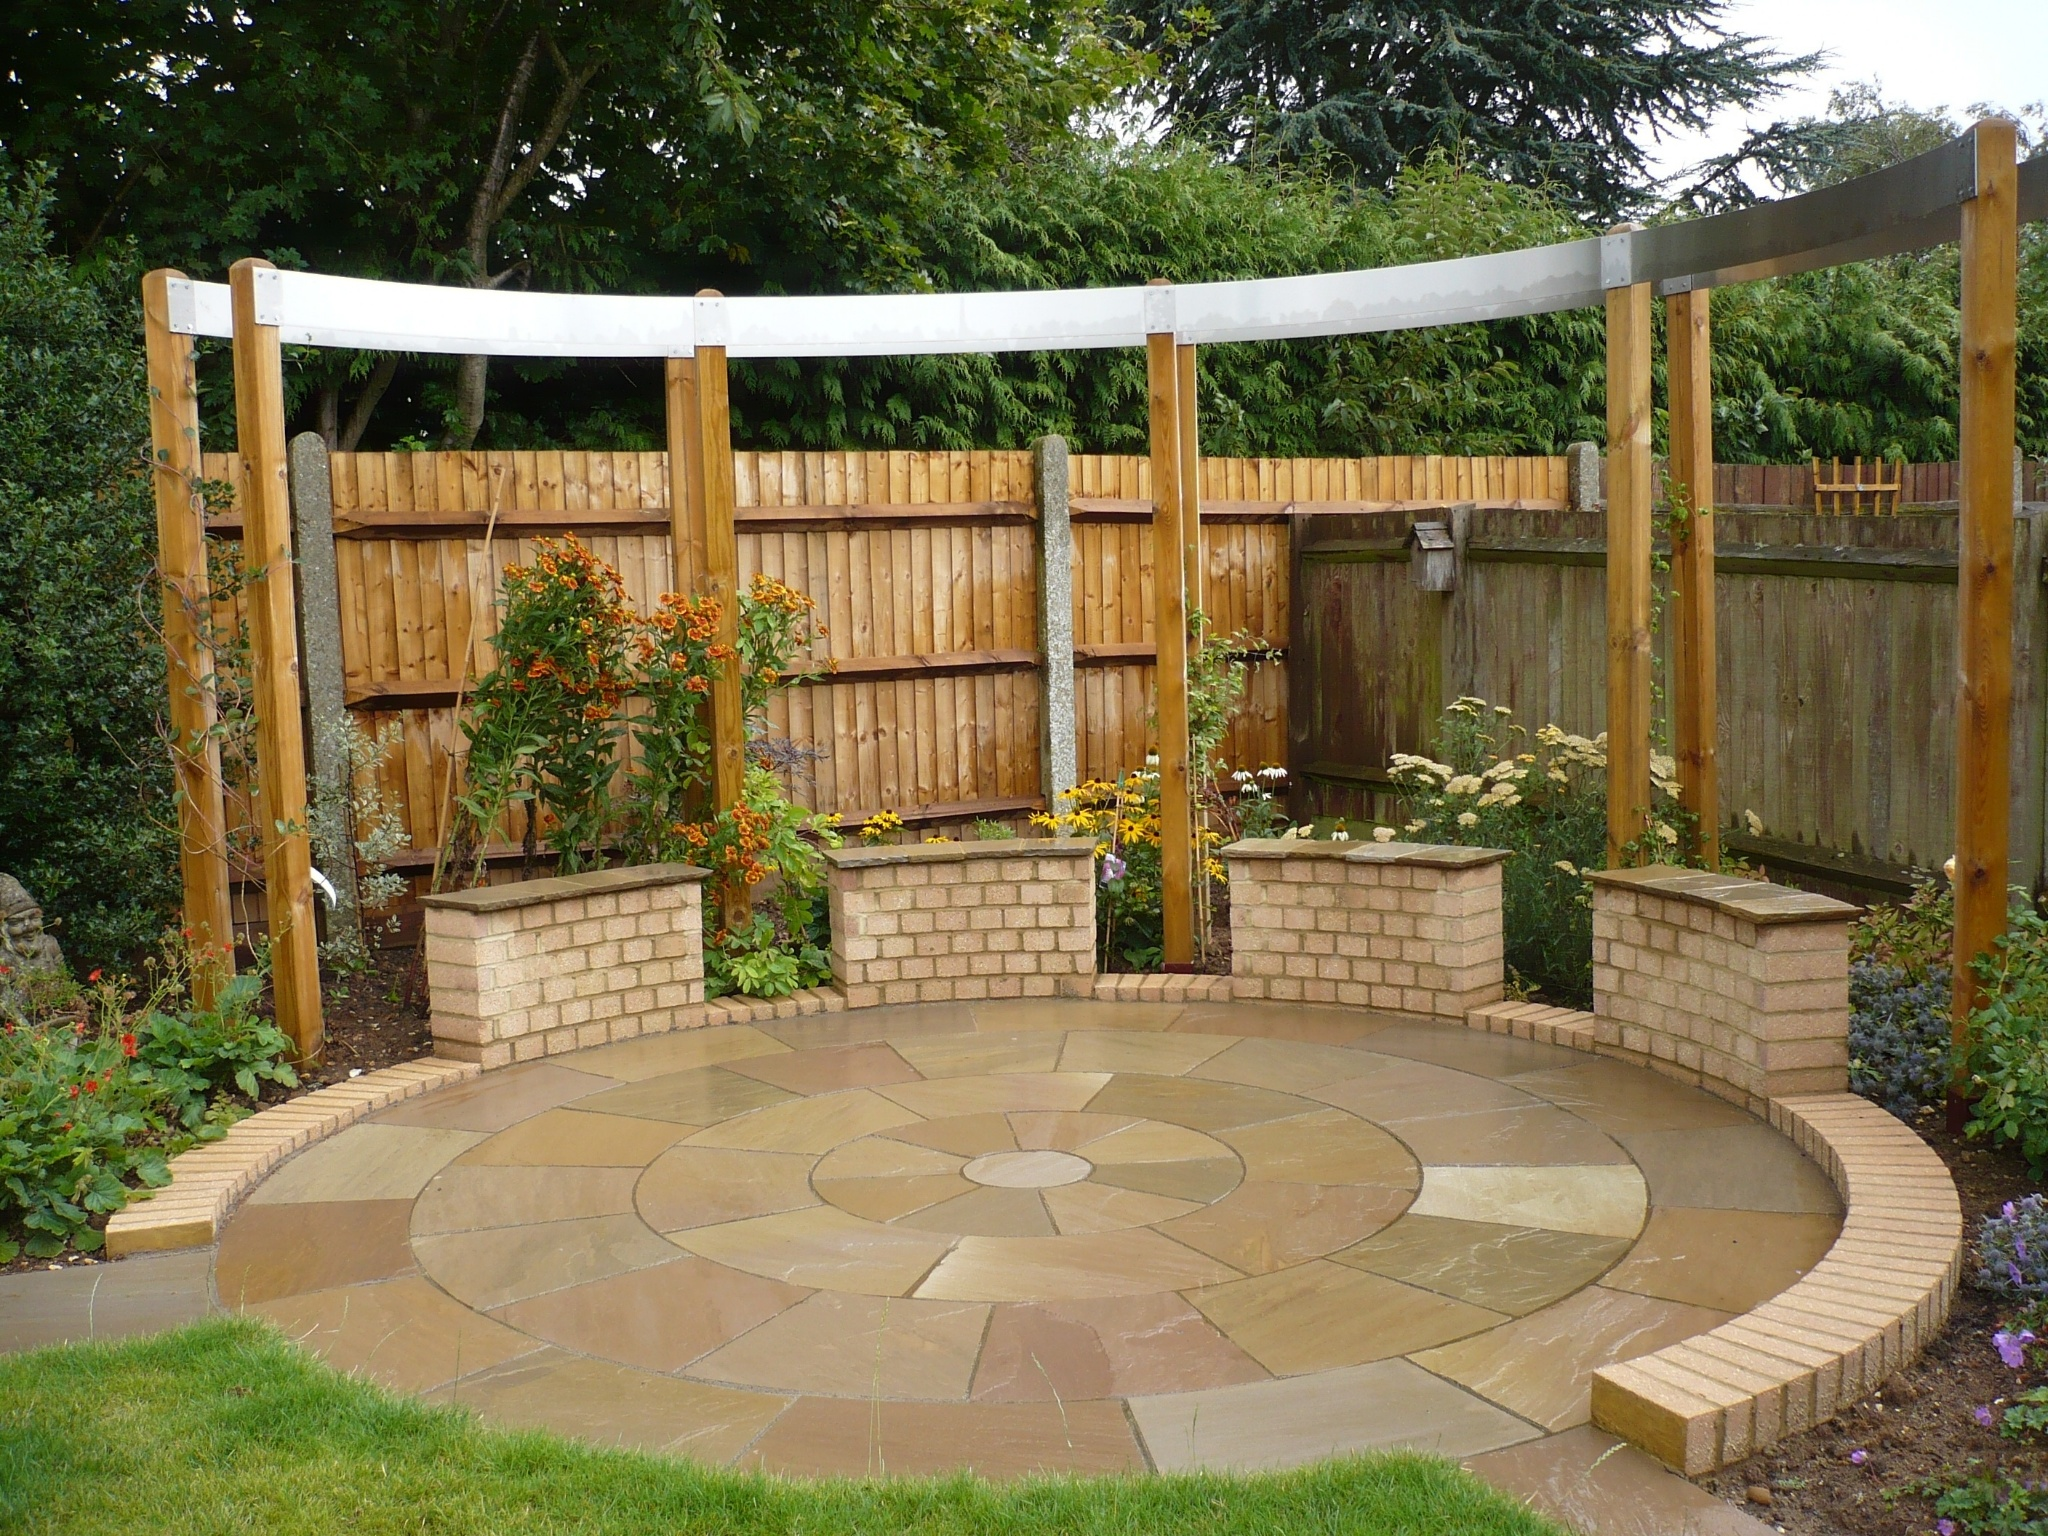 Garden_walls_brickwork_8.jpg